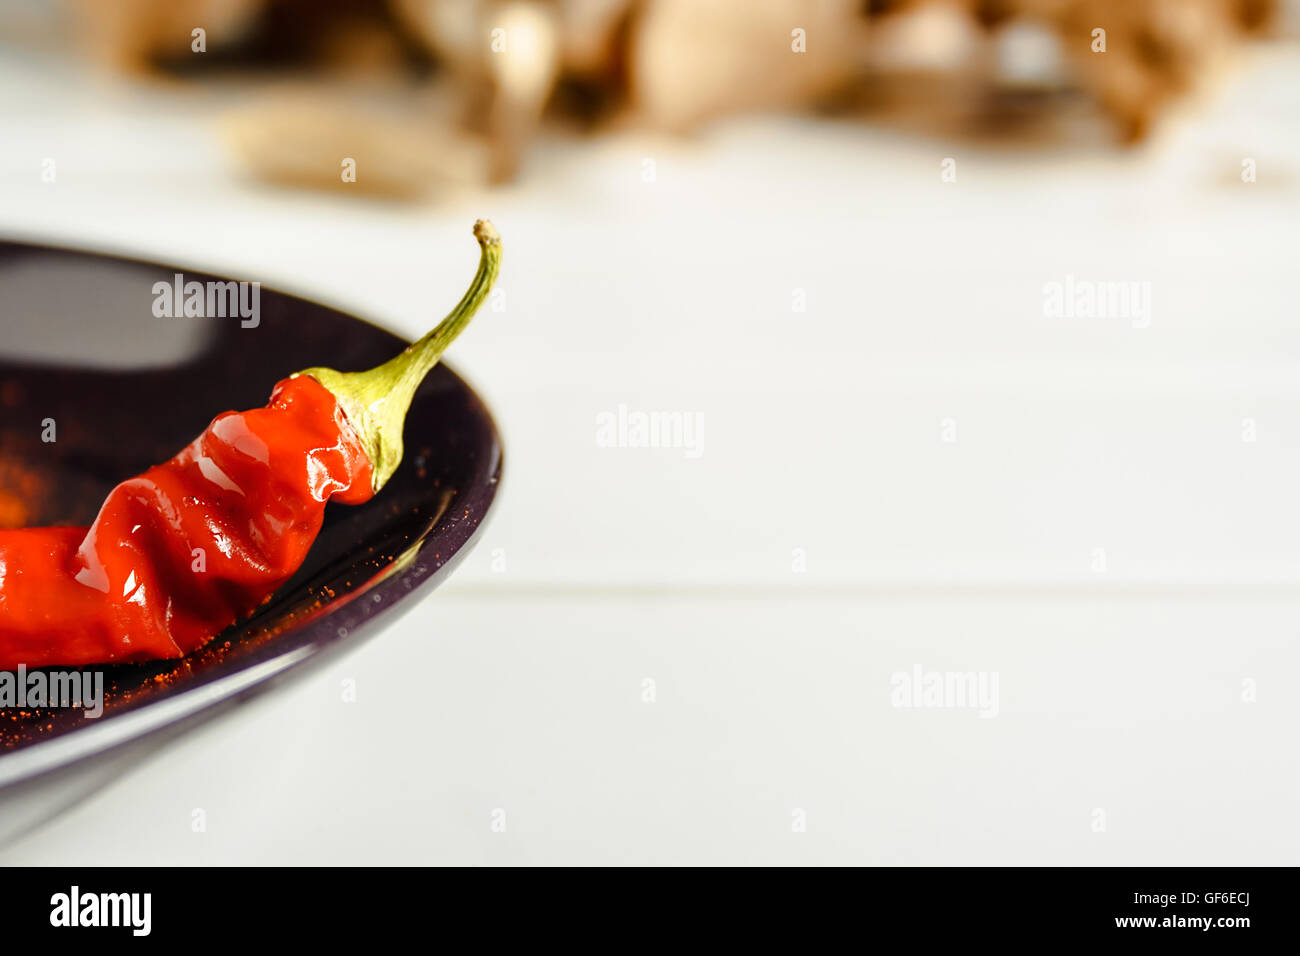 Closeup red pepper on brown dish over white wood. Horizontal image. - Stock Image